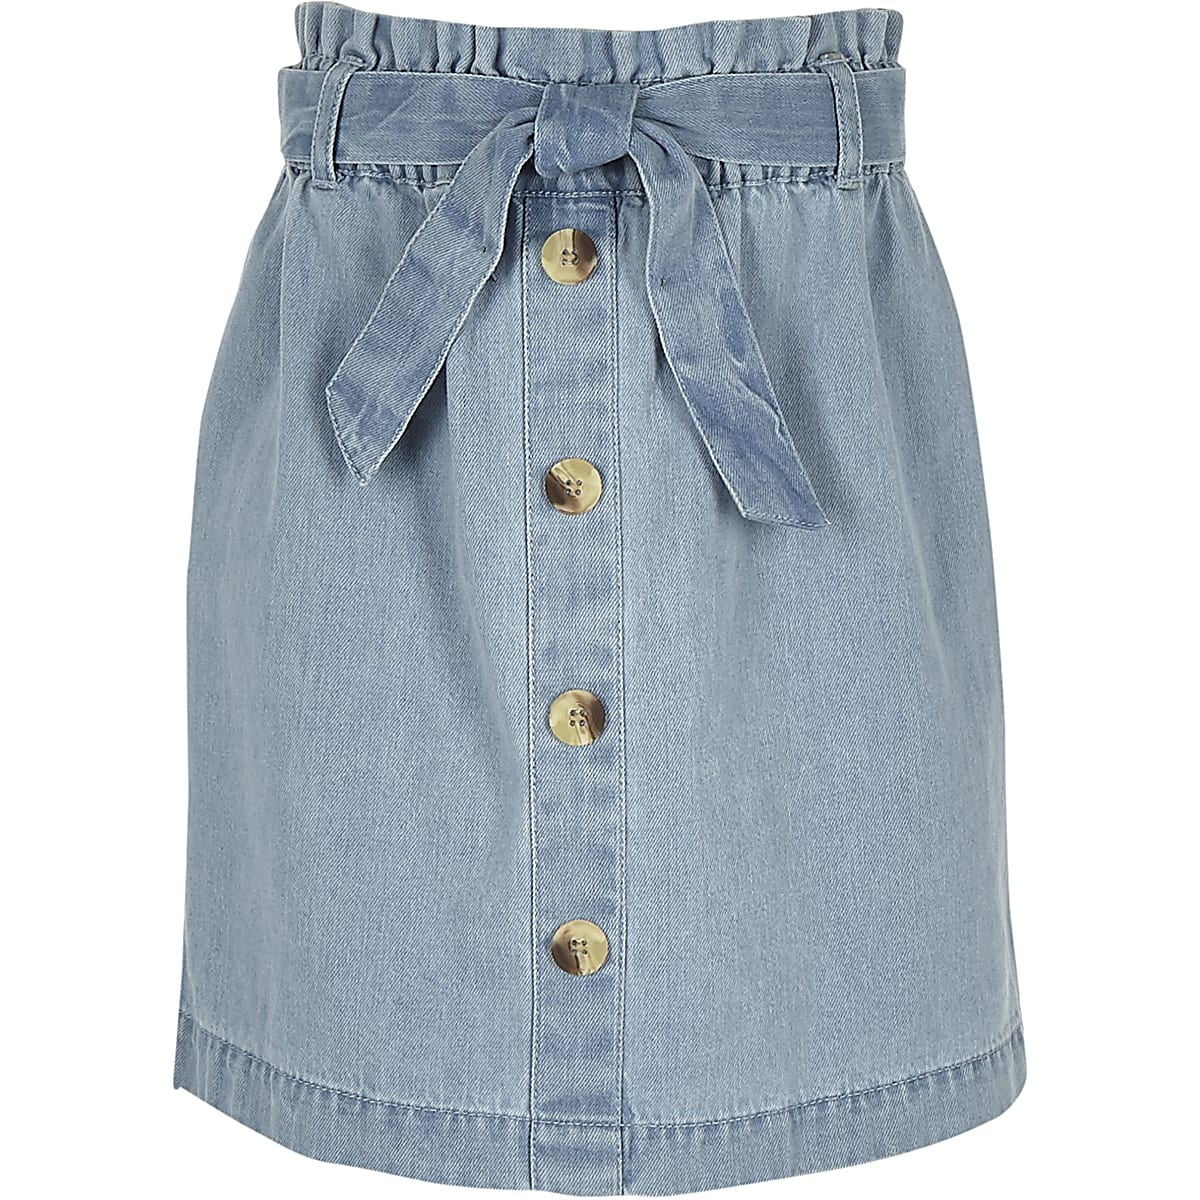 Girls blue paperbag denim skirt